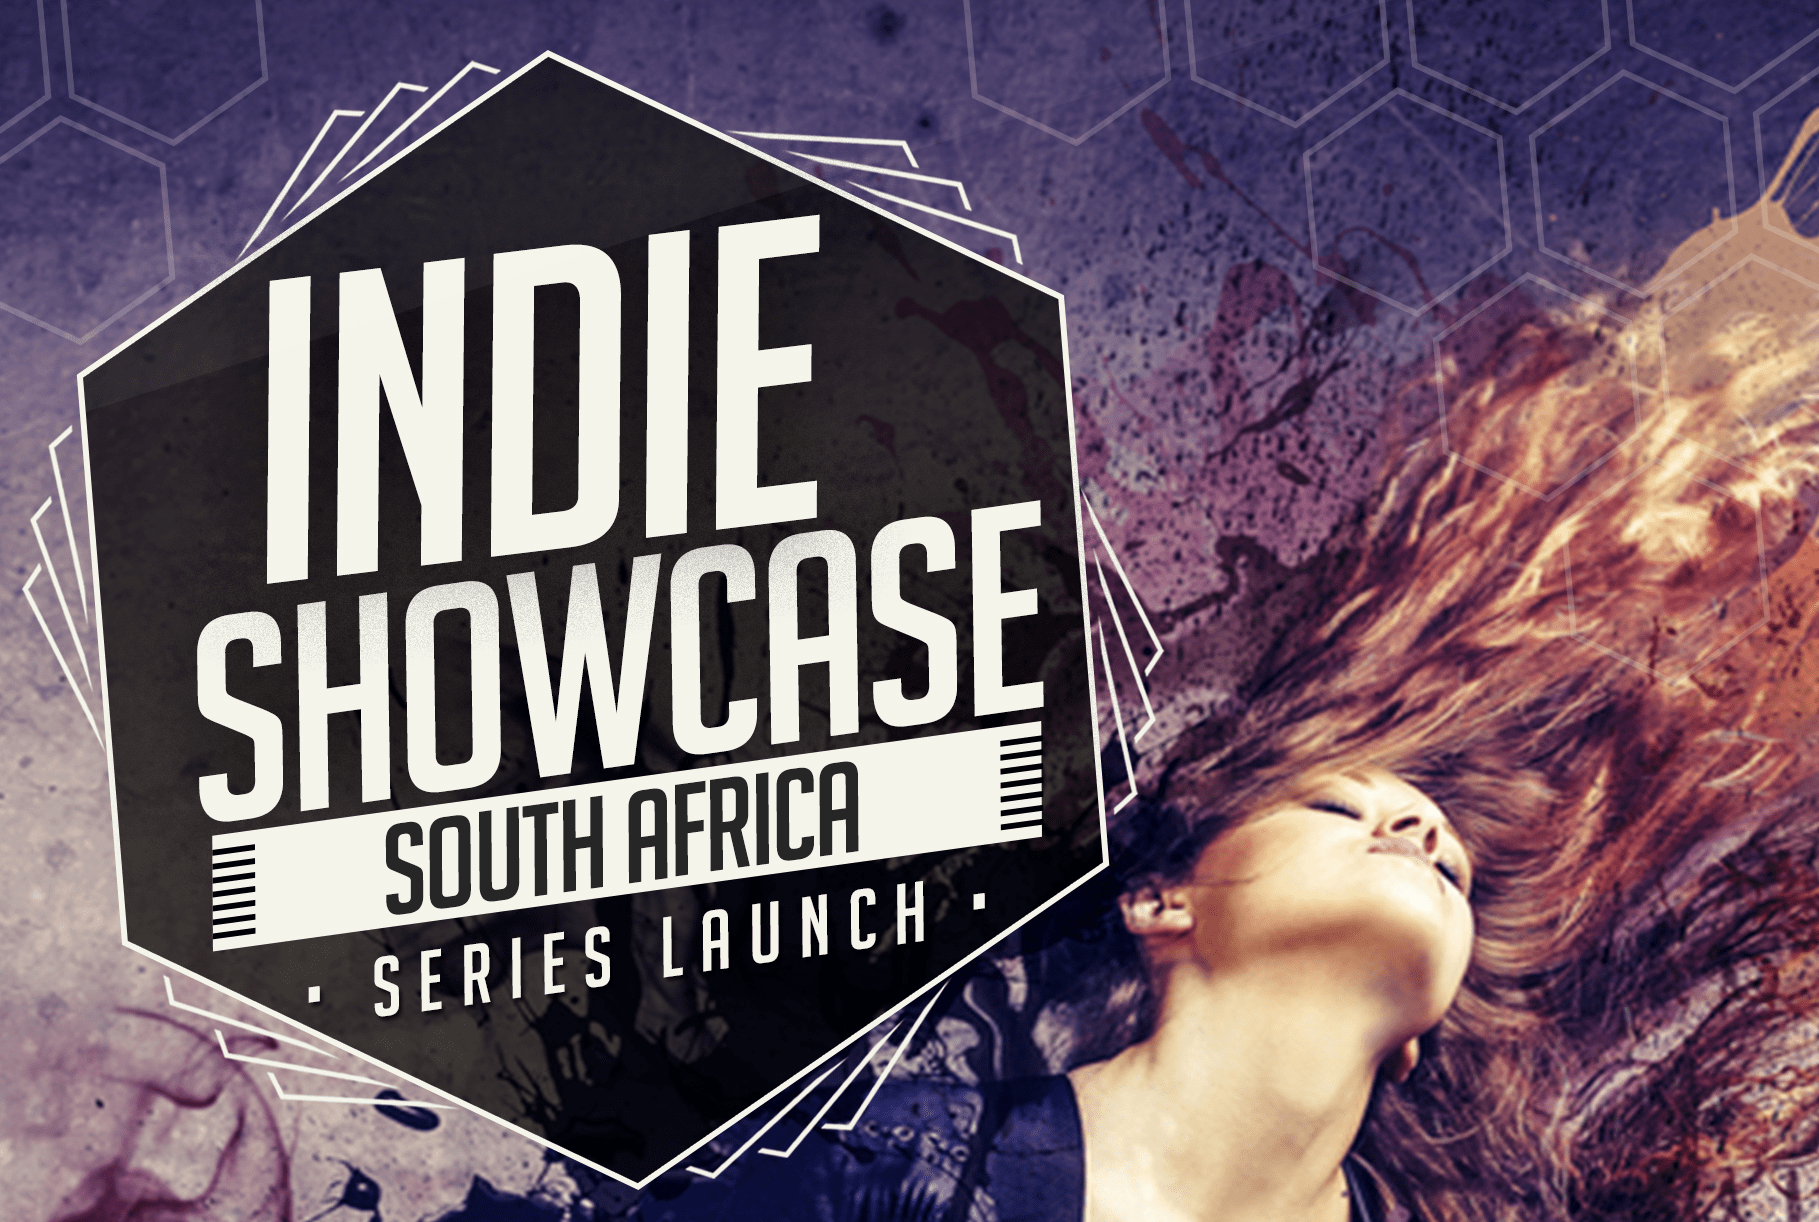 Indie Showcase Series Launch